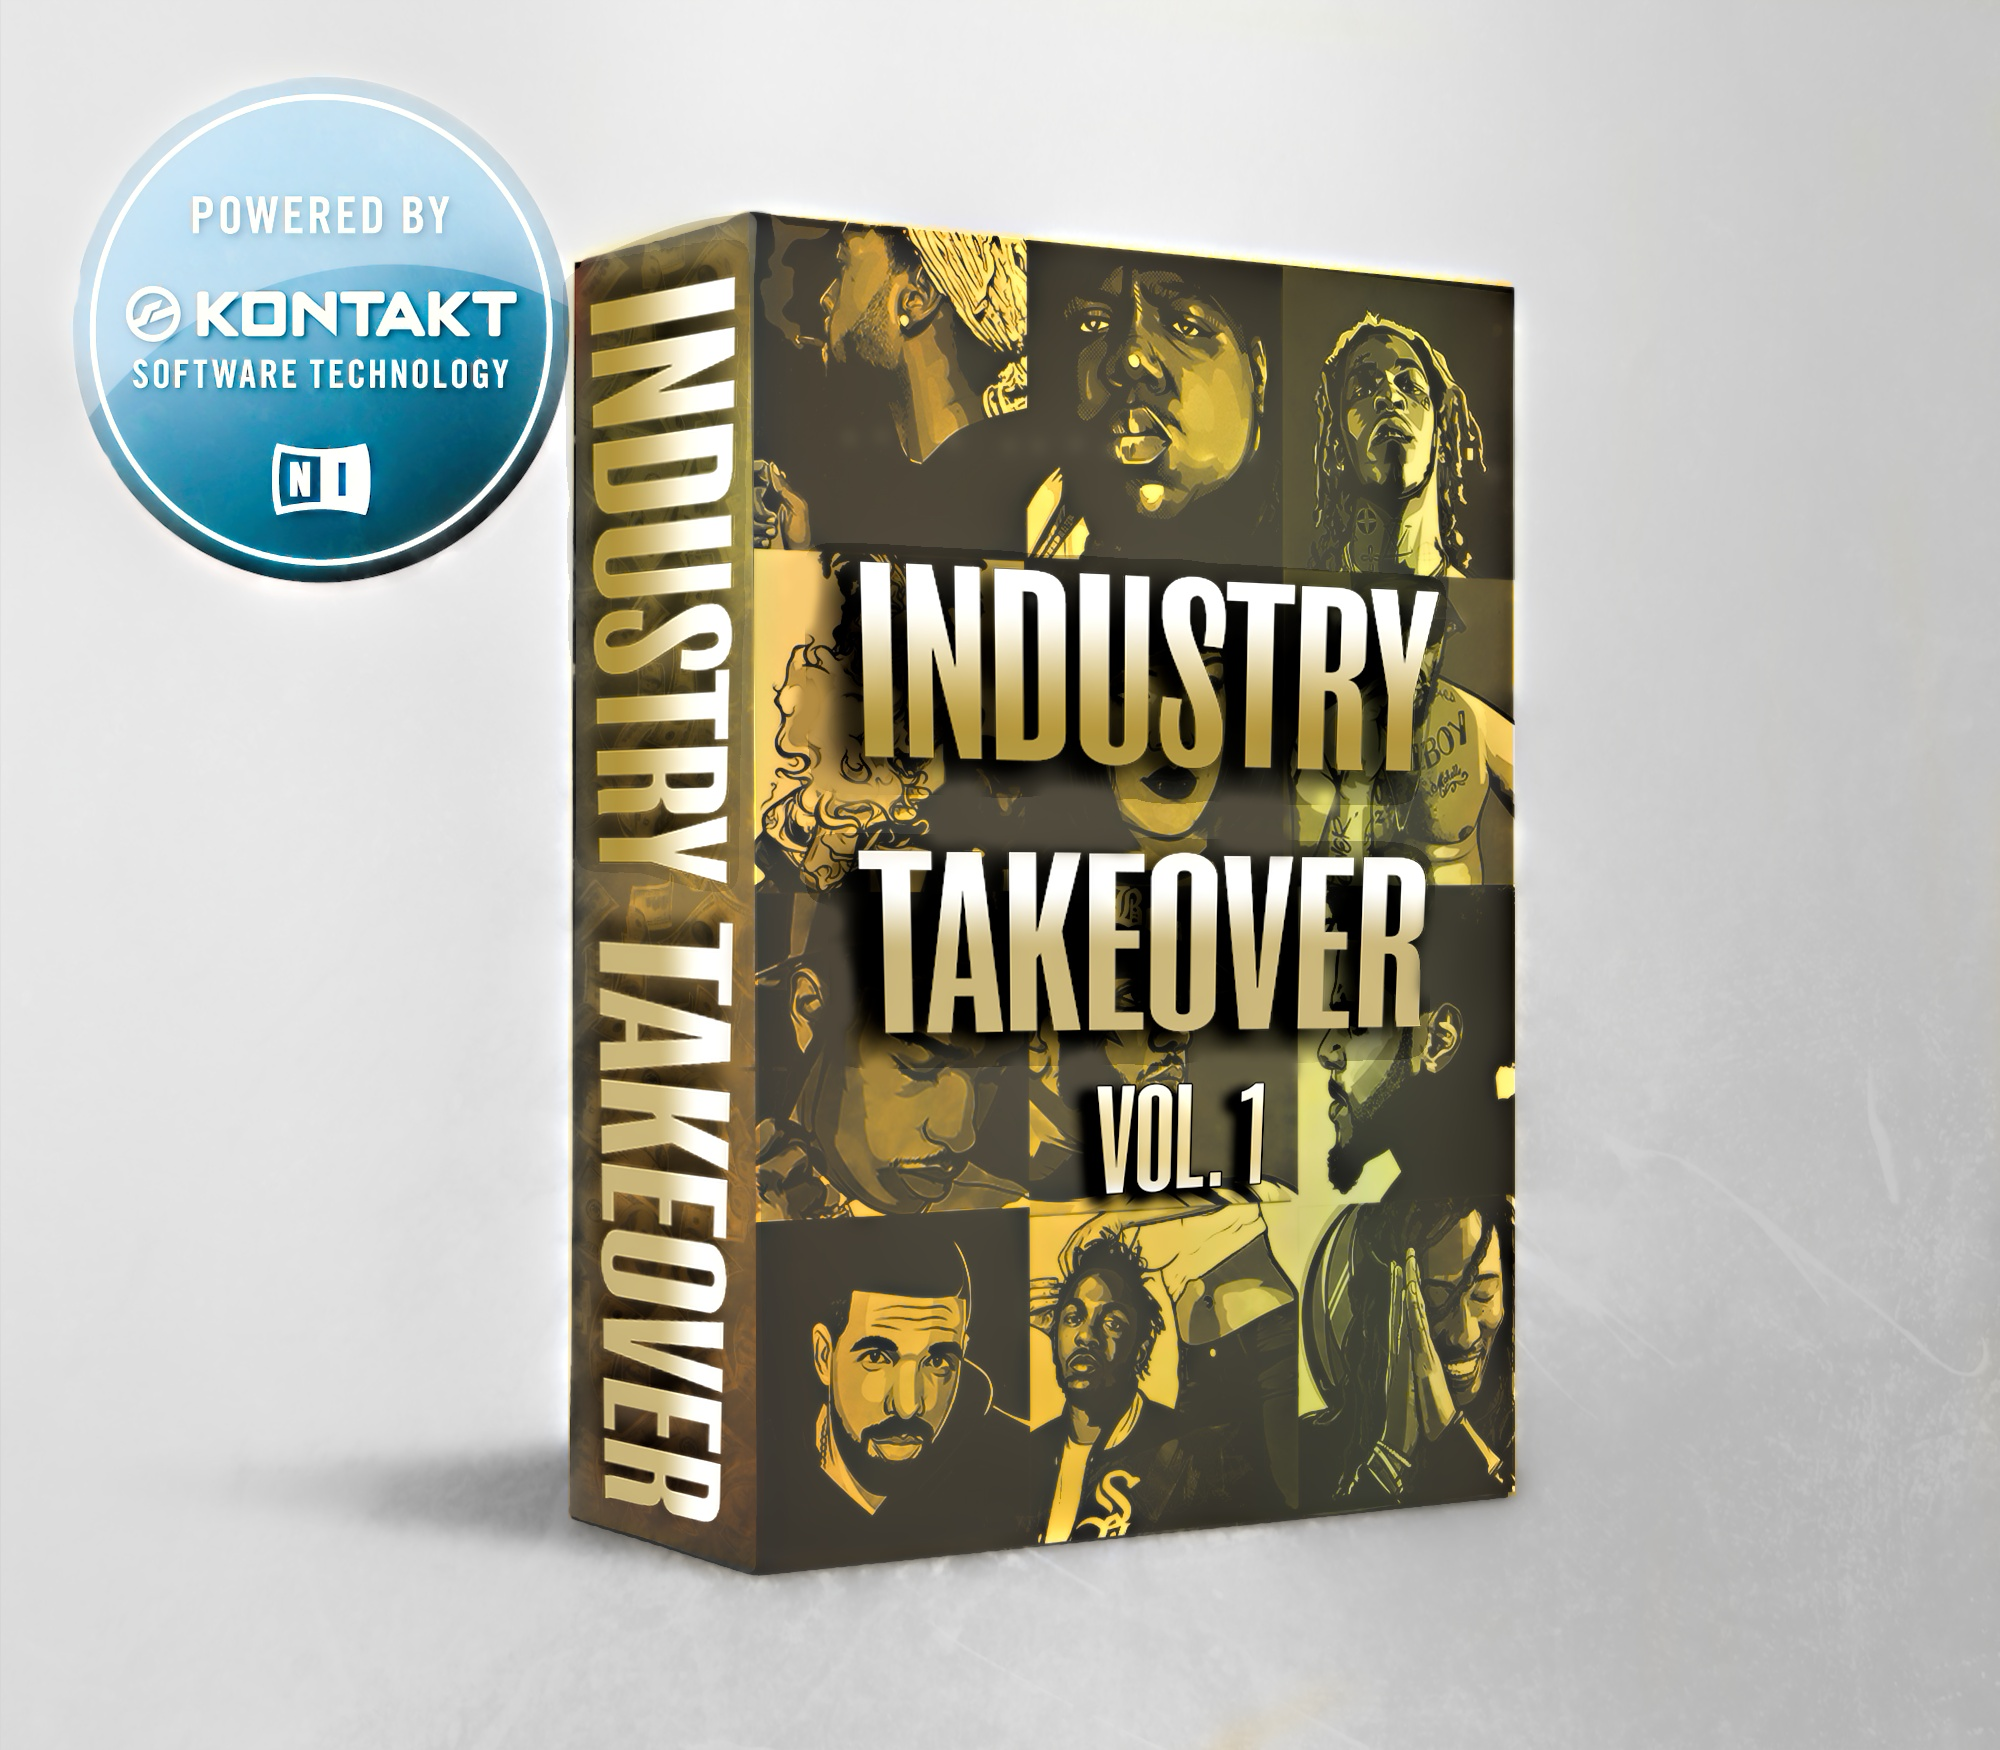 INDUSTRY TAKEOVER VOL. 1 KONTAKT